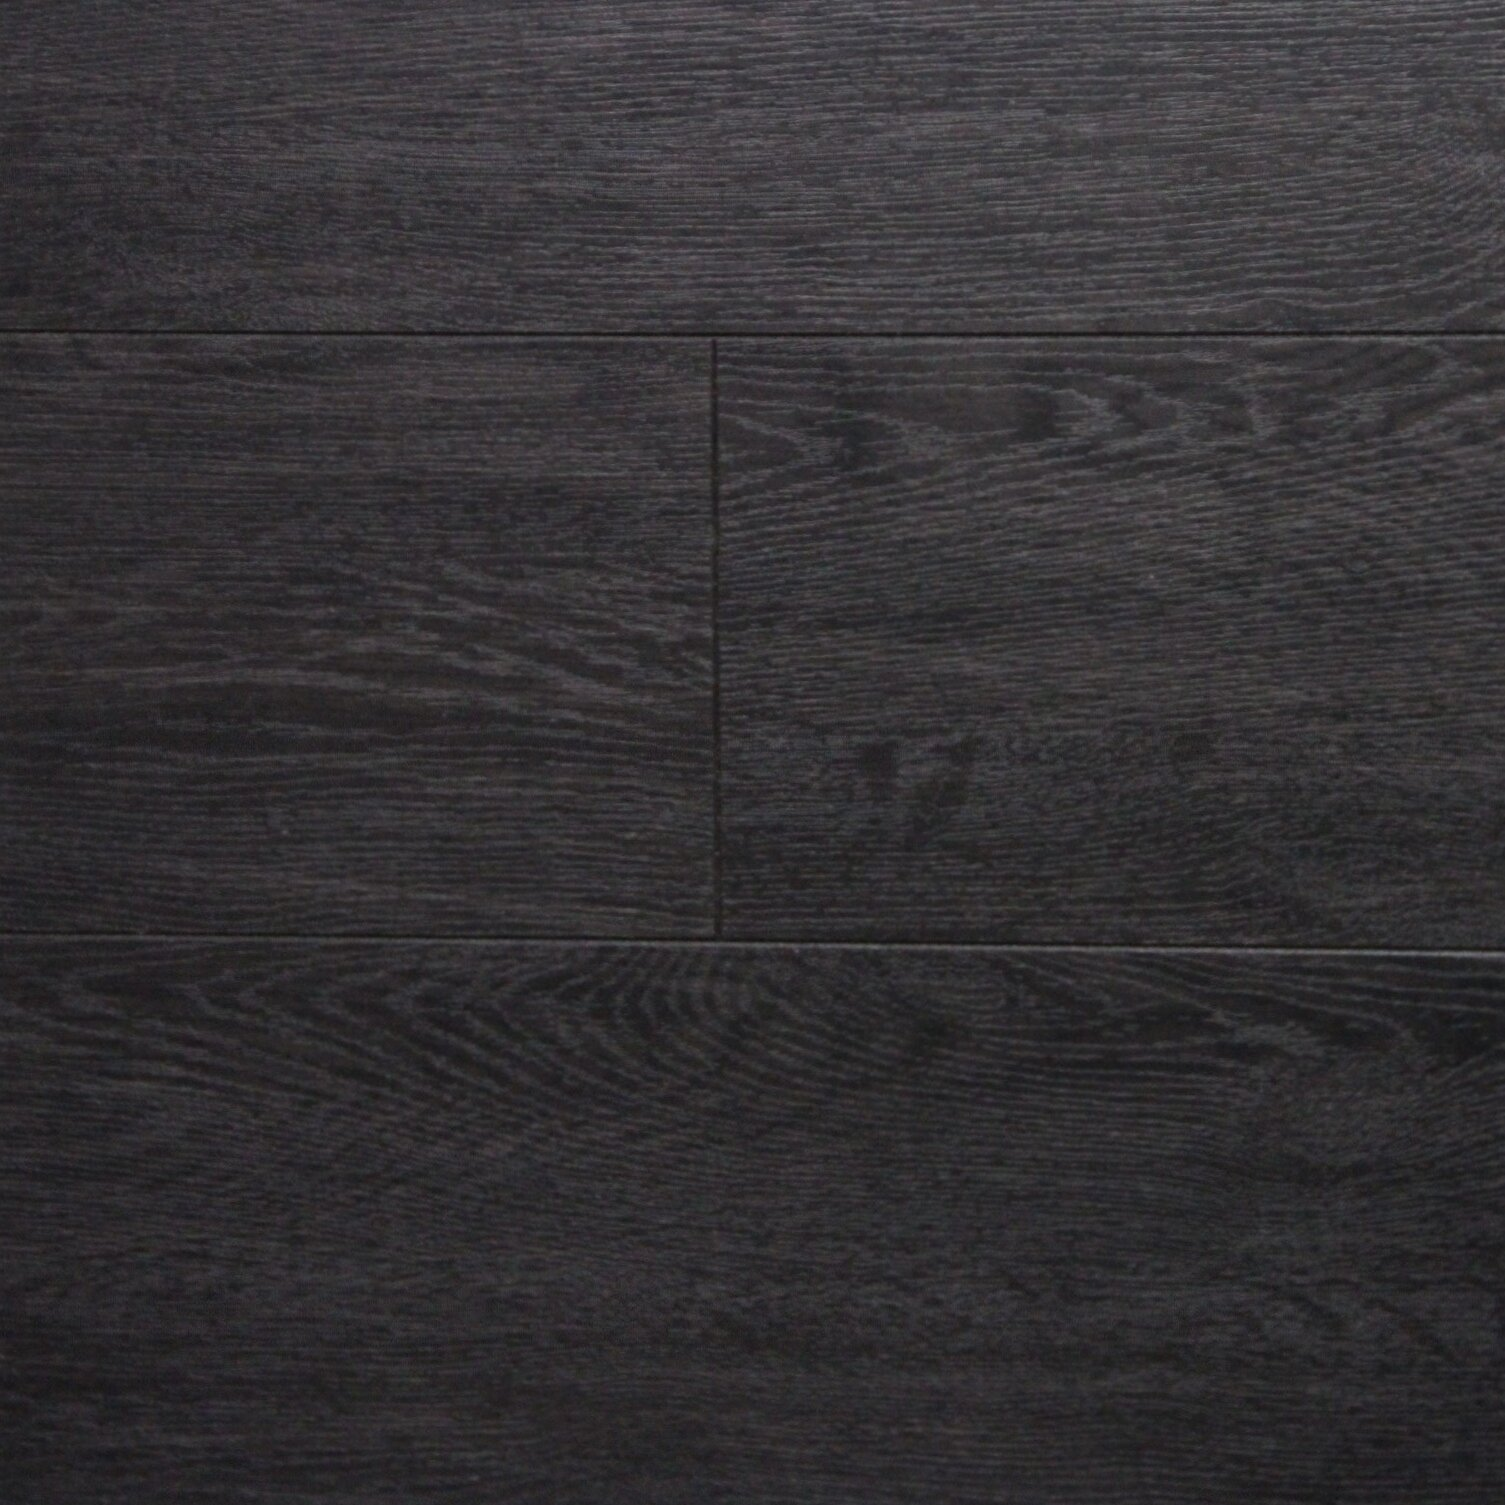 Serradon 6 Quot X 48 Quot X 12 3mm Laminate In Dark Wenge